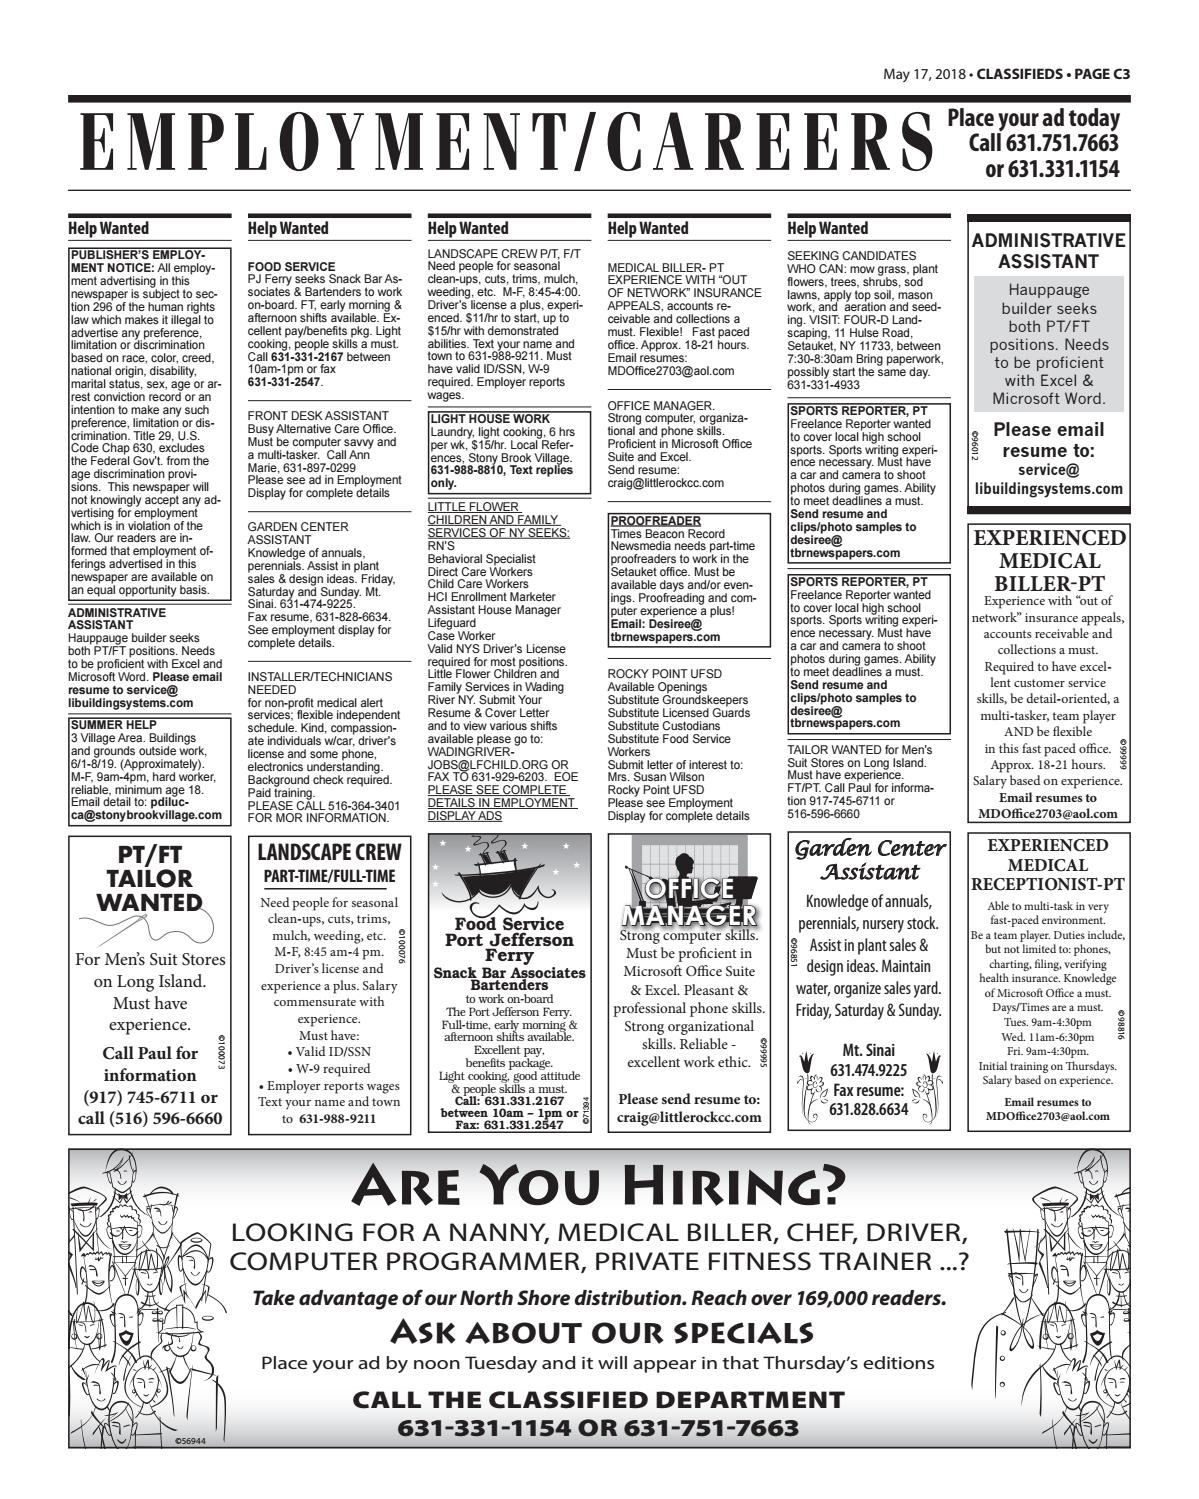 Employment/Careers - May 17, 2018 by TBR News Media - issuu